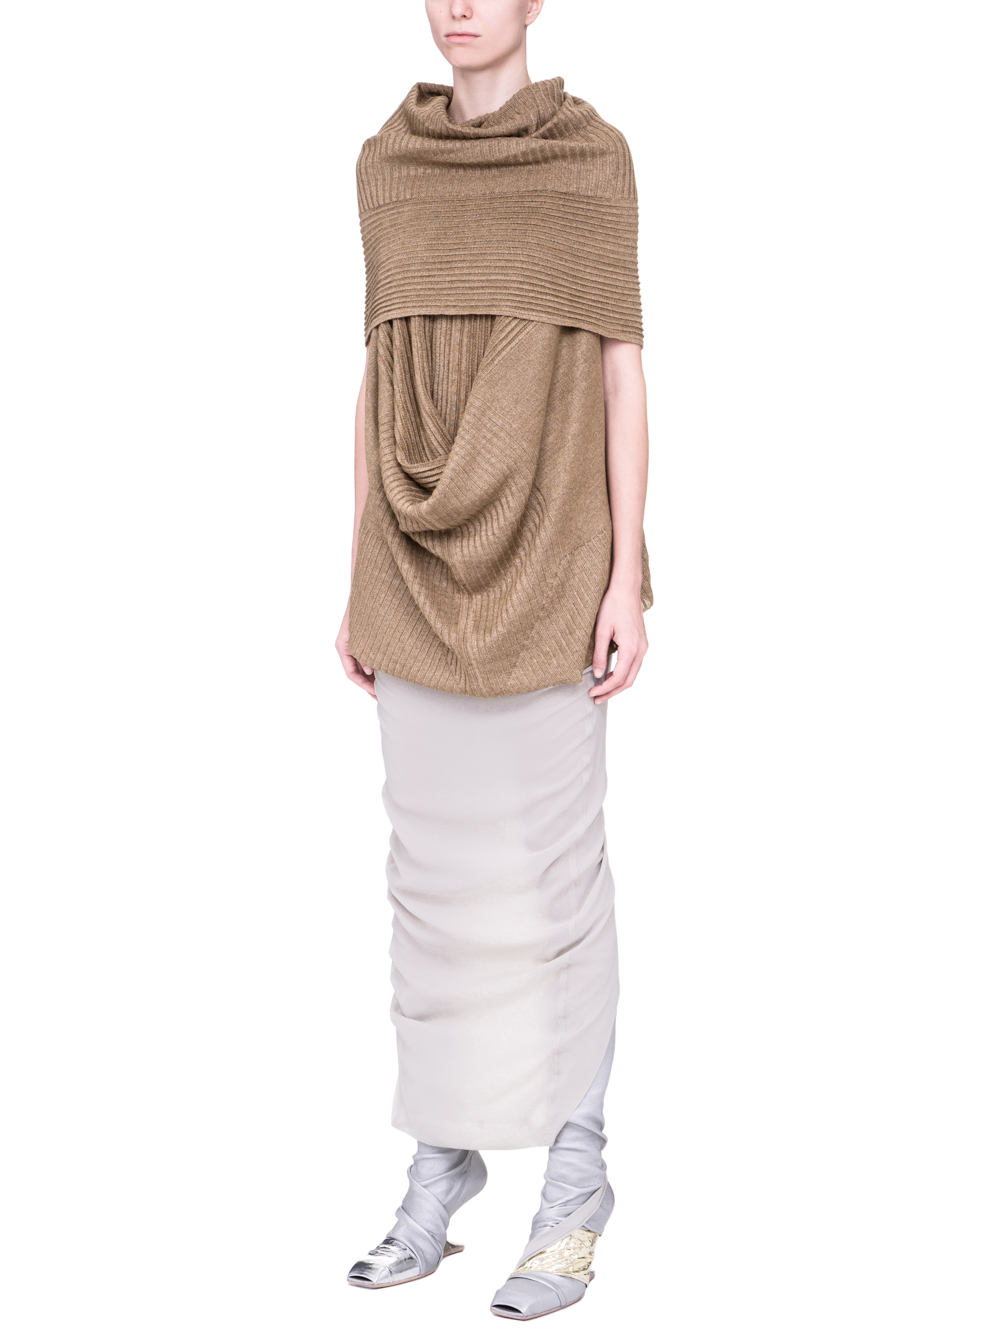 RICK OWENS SS19 BABEL SLEEVELESS SEAHORSE TOP IN GOLD